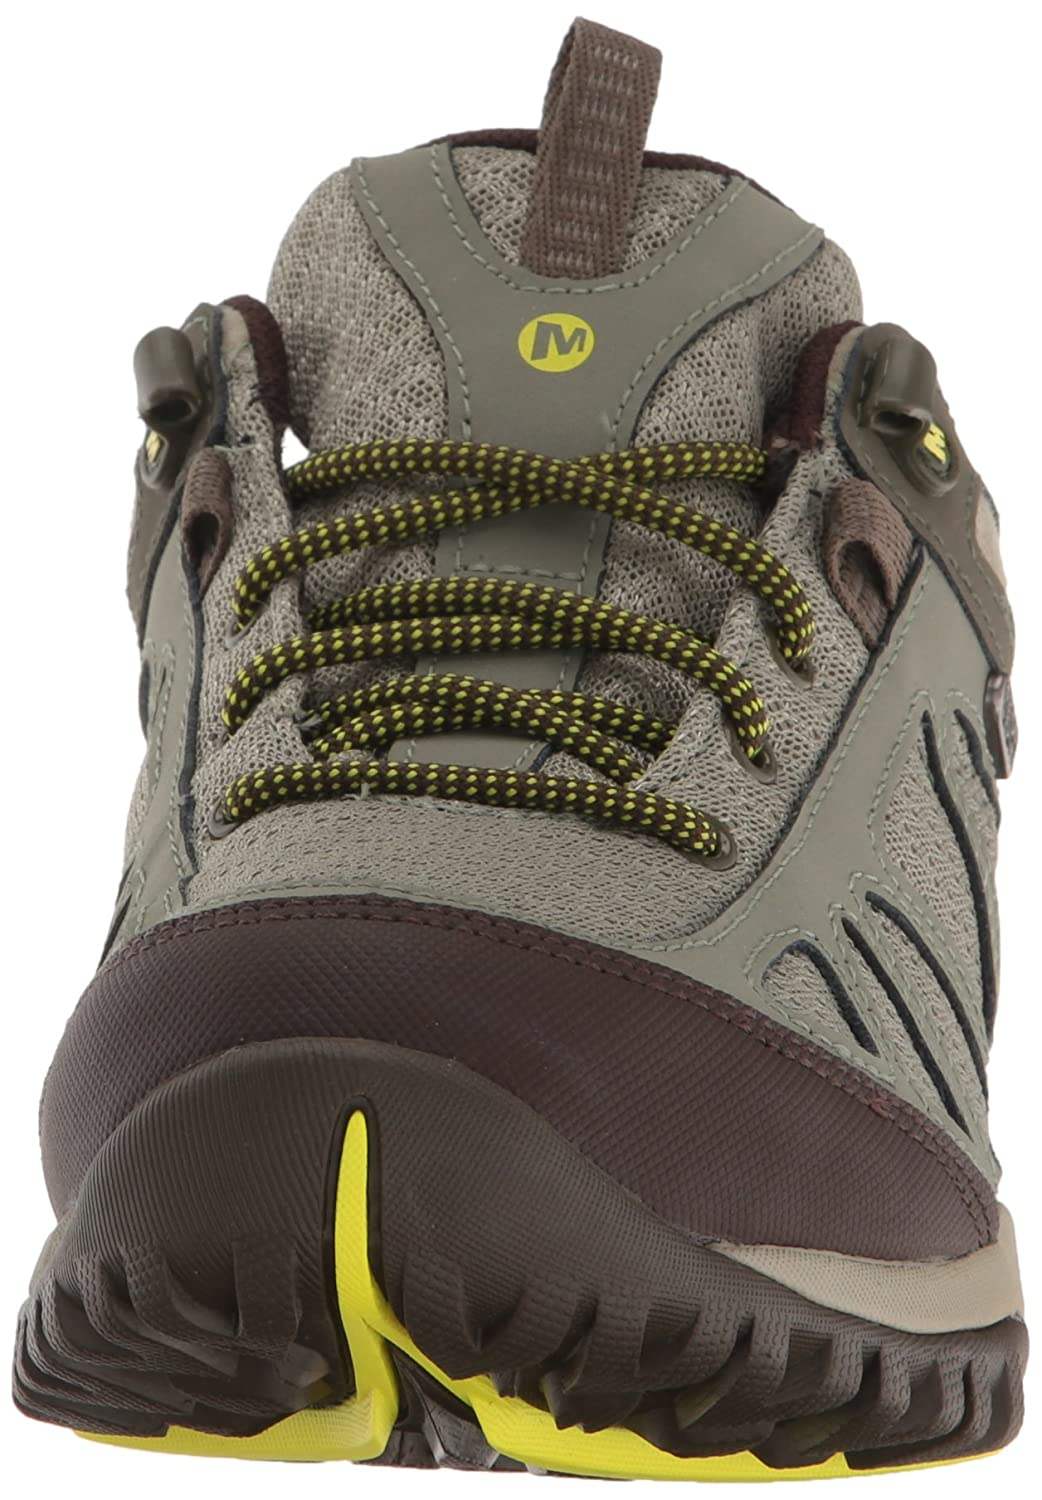 Merrell B01HFR7M10 Women's Siren Sport Q2 Waterproof Hiking Shoe B01HFR7M10 Merrell 8 B(M) US|Dusty Olive 783473